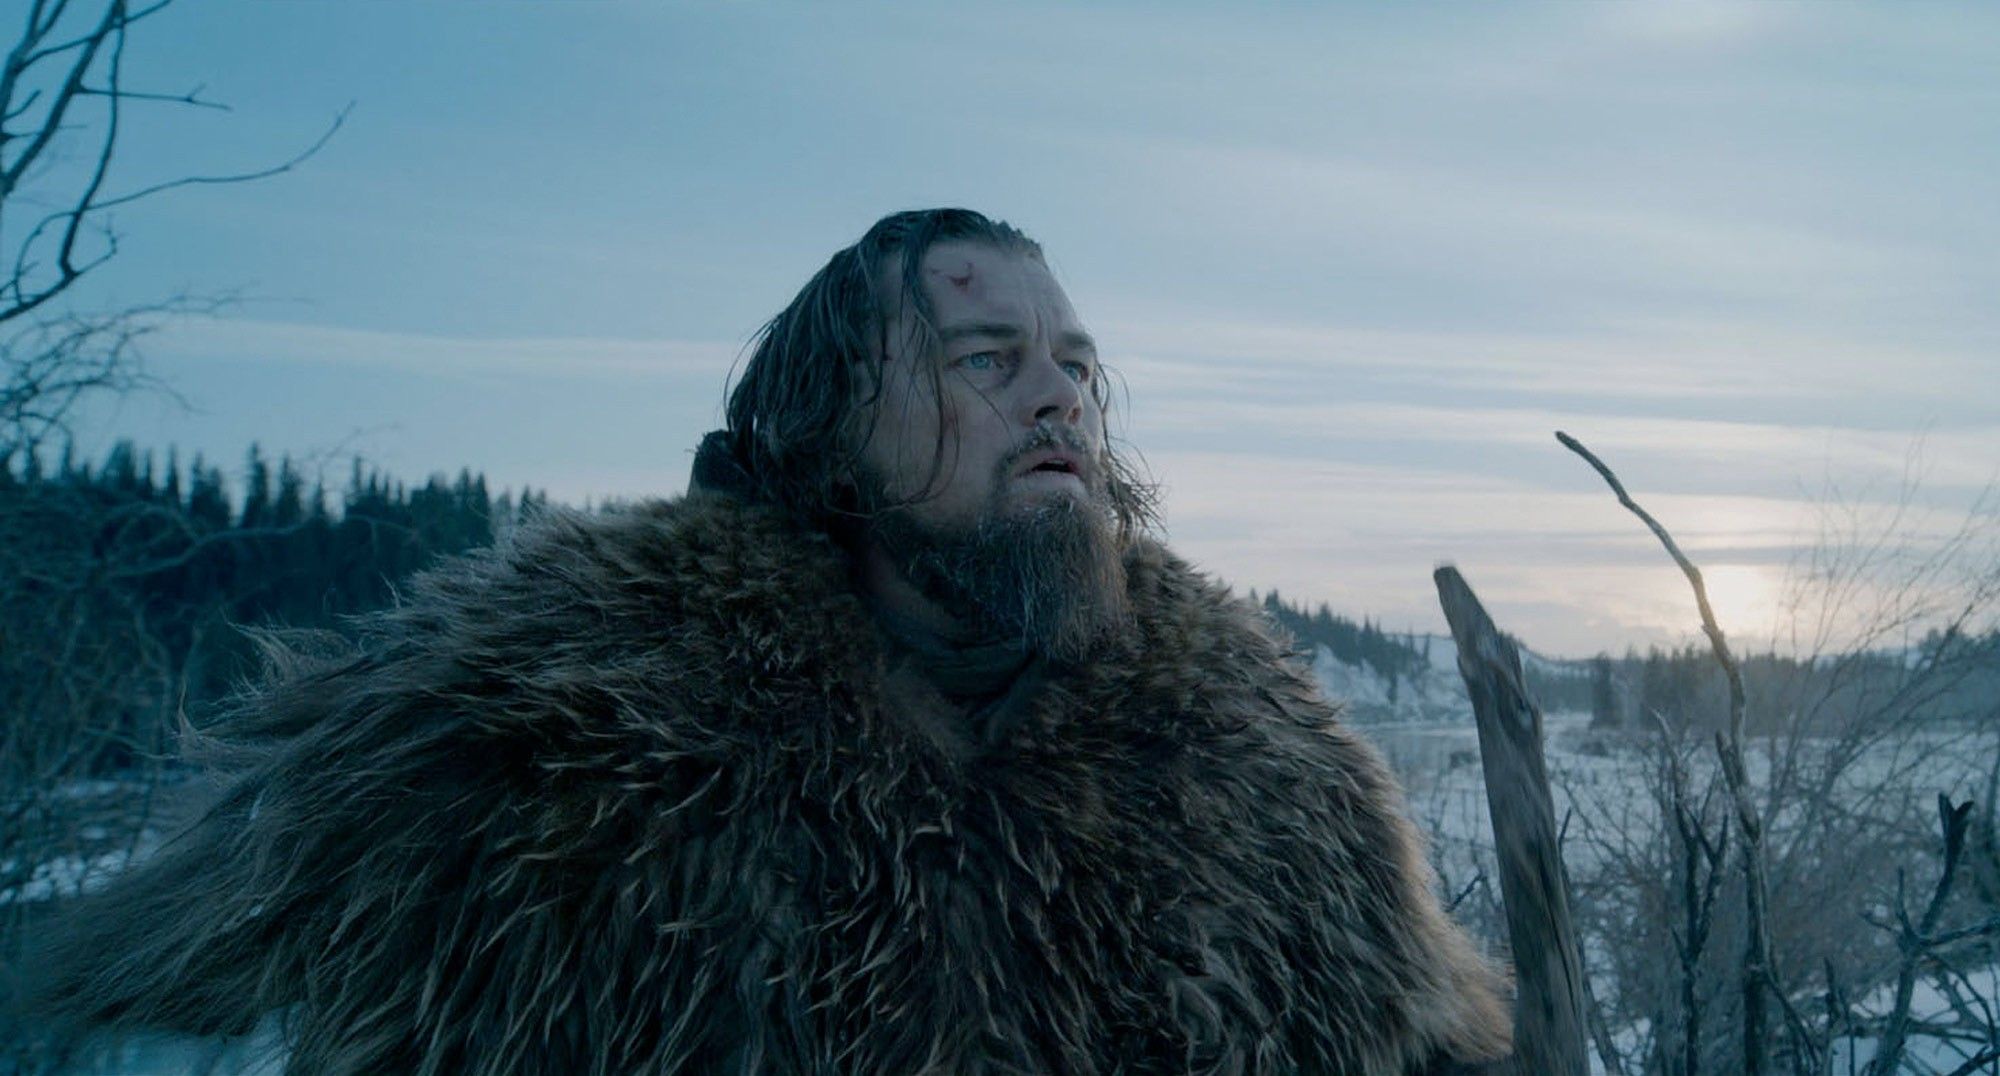 If Leonardo DiCaprio doesn't get an Oscar this year, these fans are going to MAKE him one